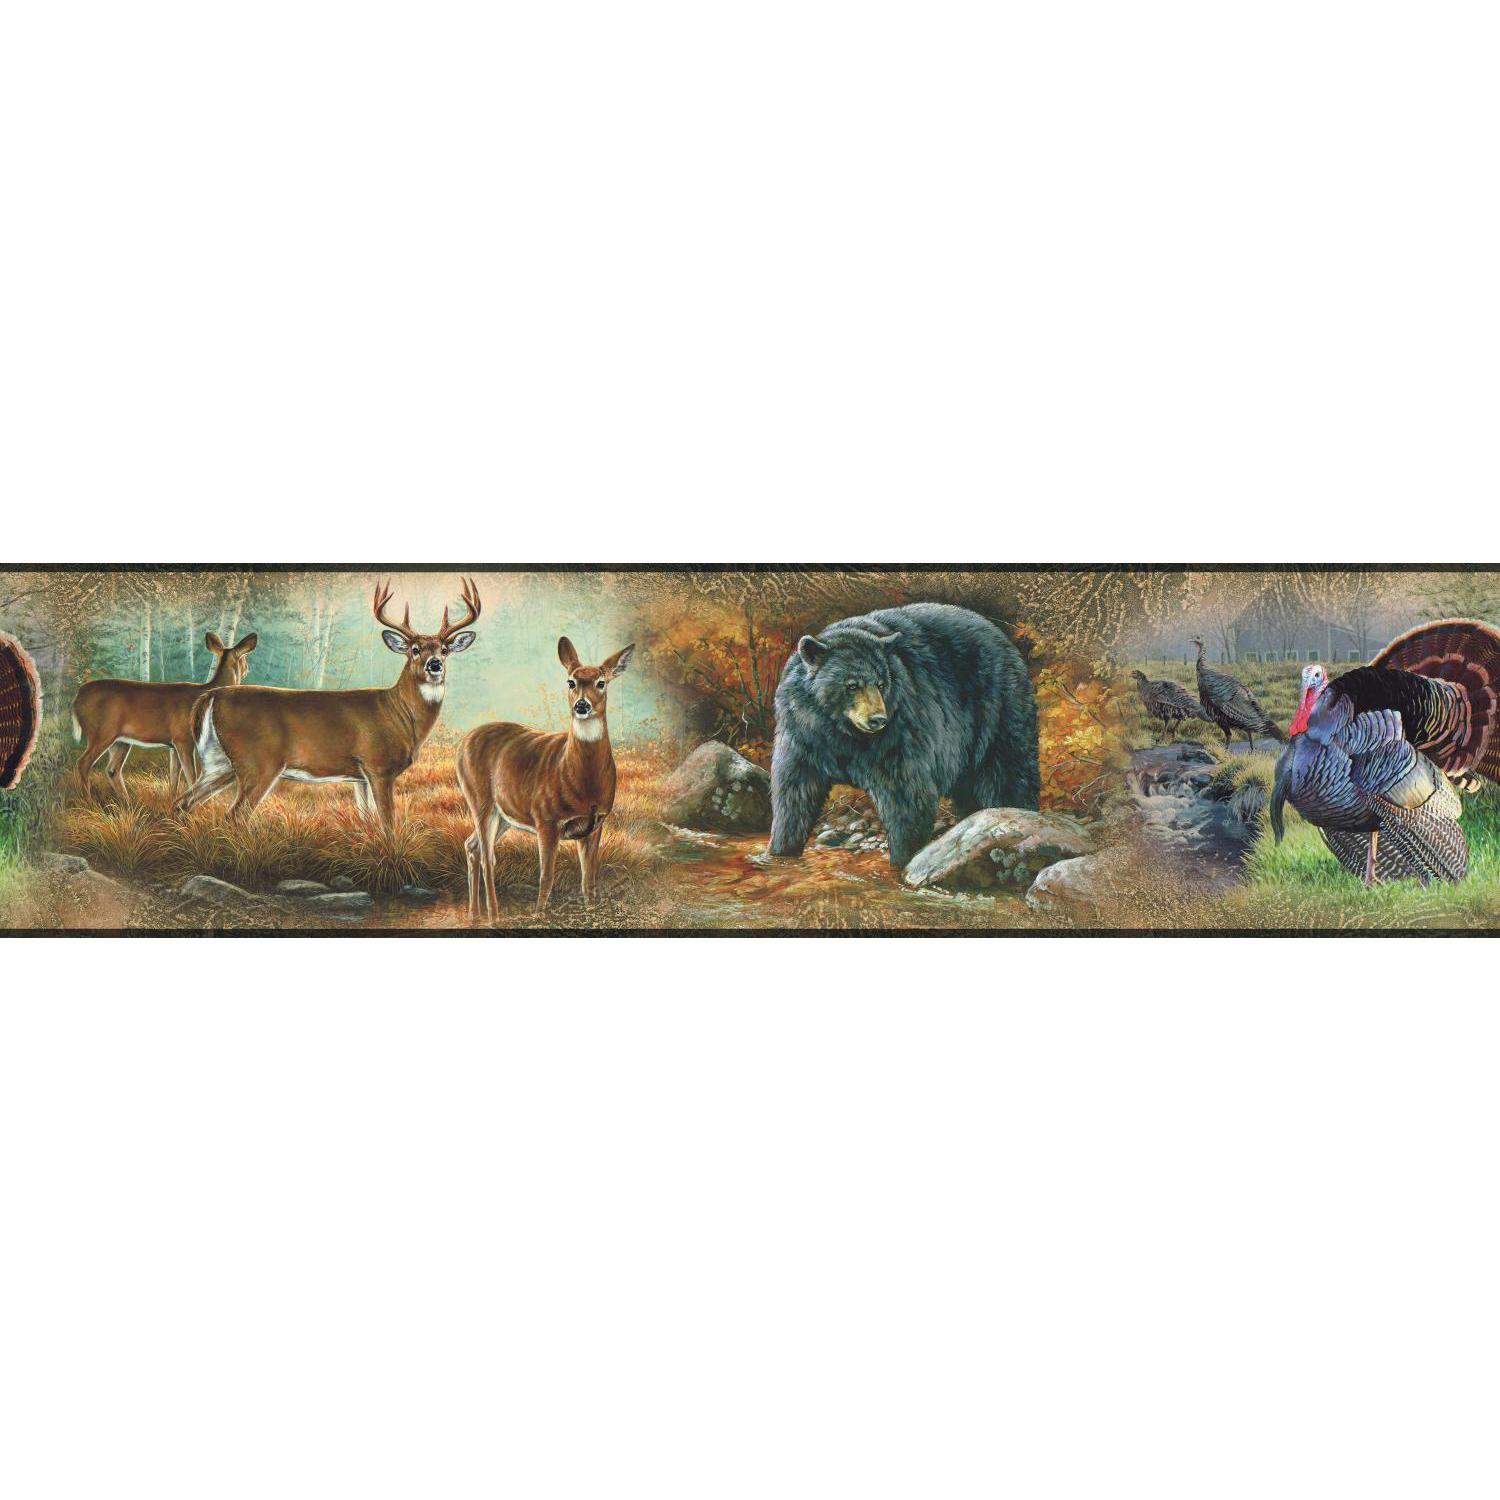 Great Outdoors Wall Border Peel Amp Stick Wallpaper Wildlife Hunting 1500x1500